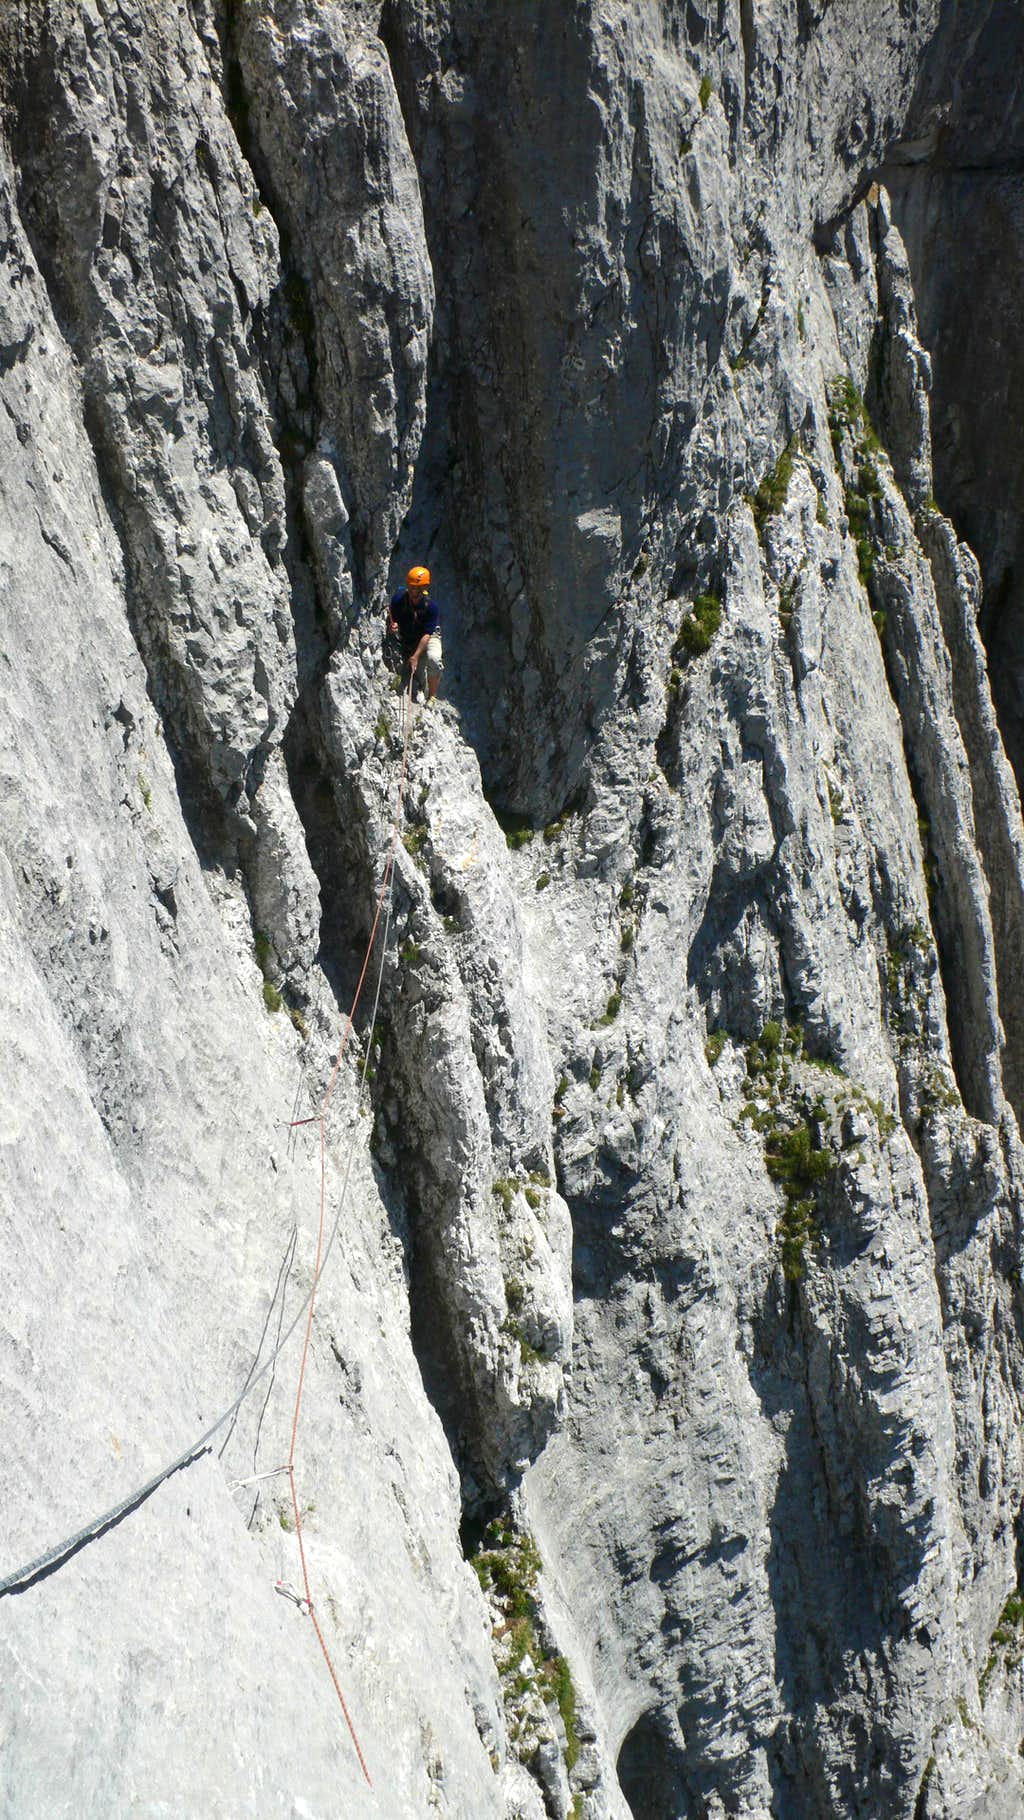 Looking back on pitch 11